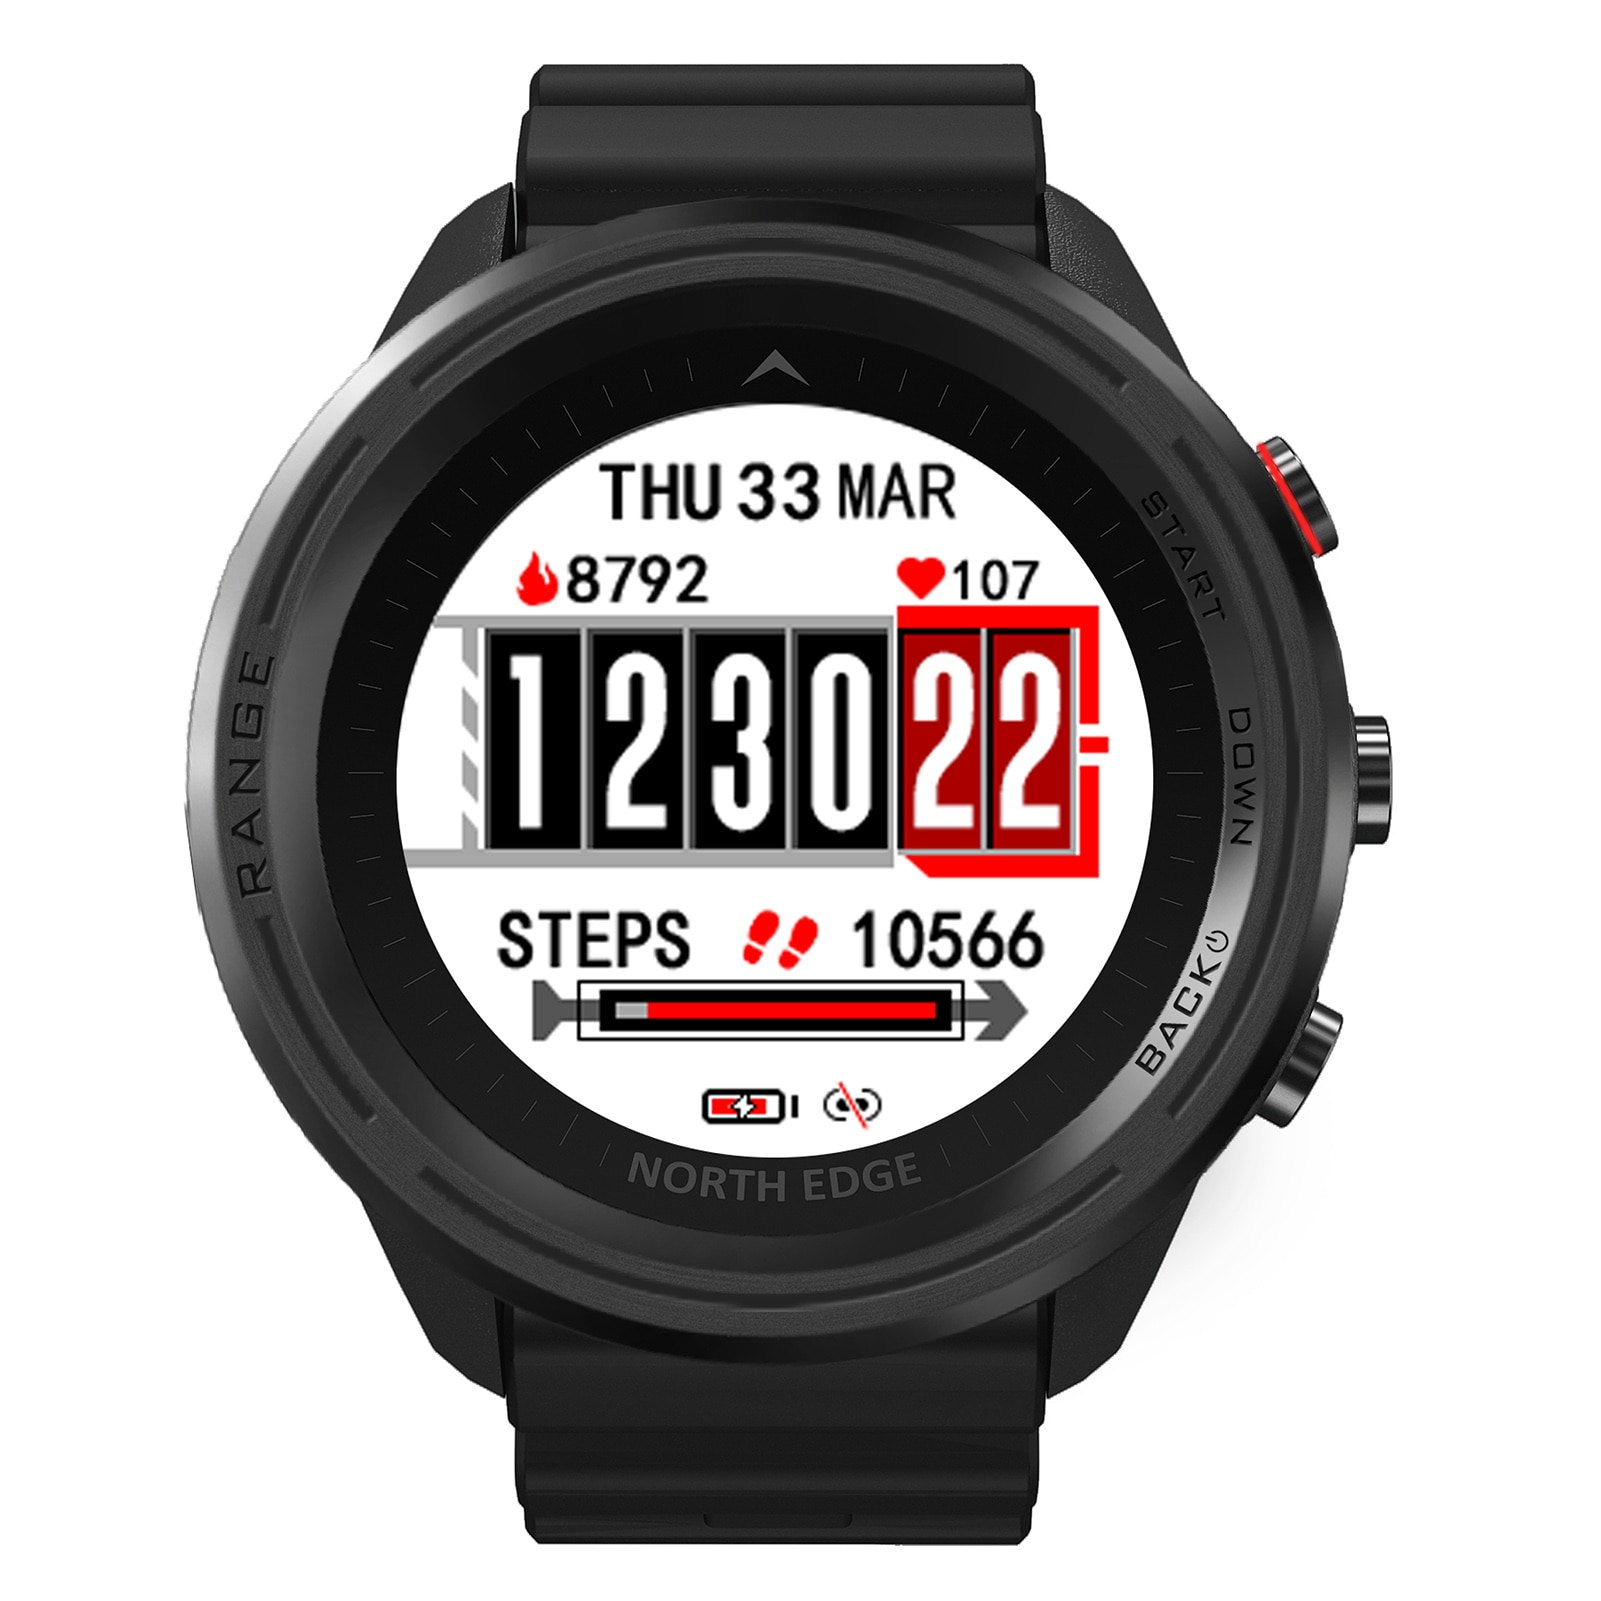 Promo For NORTH EDGE Smart Waterproof Fitness Tracker Monitor High Pressure Compass Temperature Bluetooth Heart Rate Dive Watches